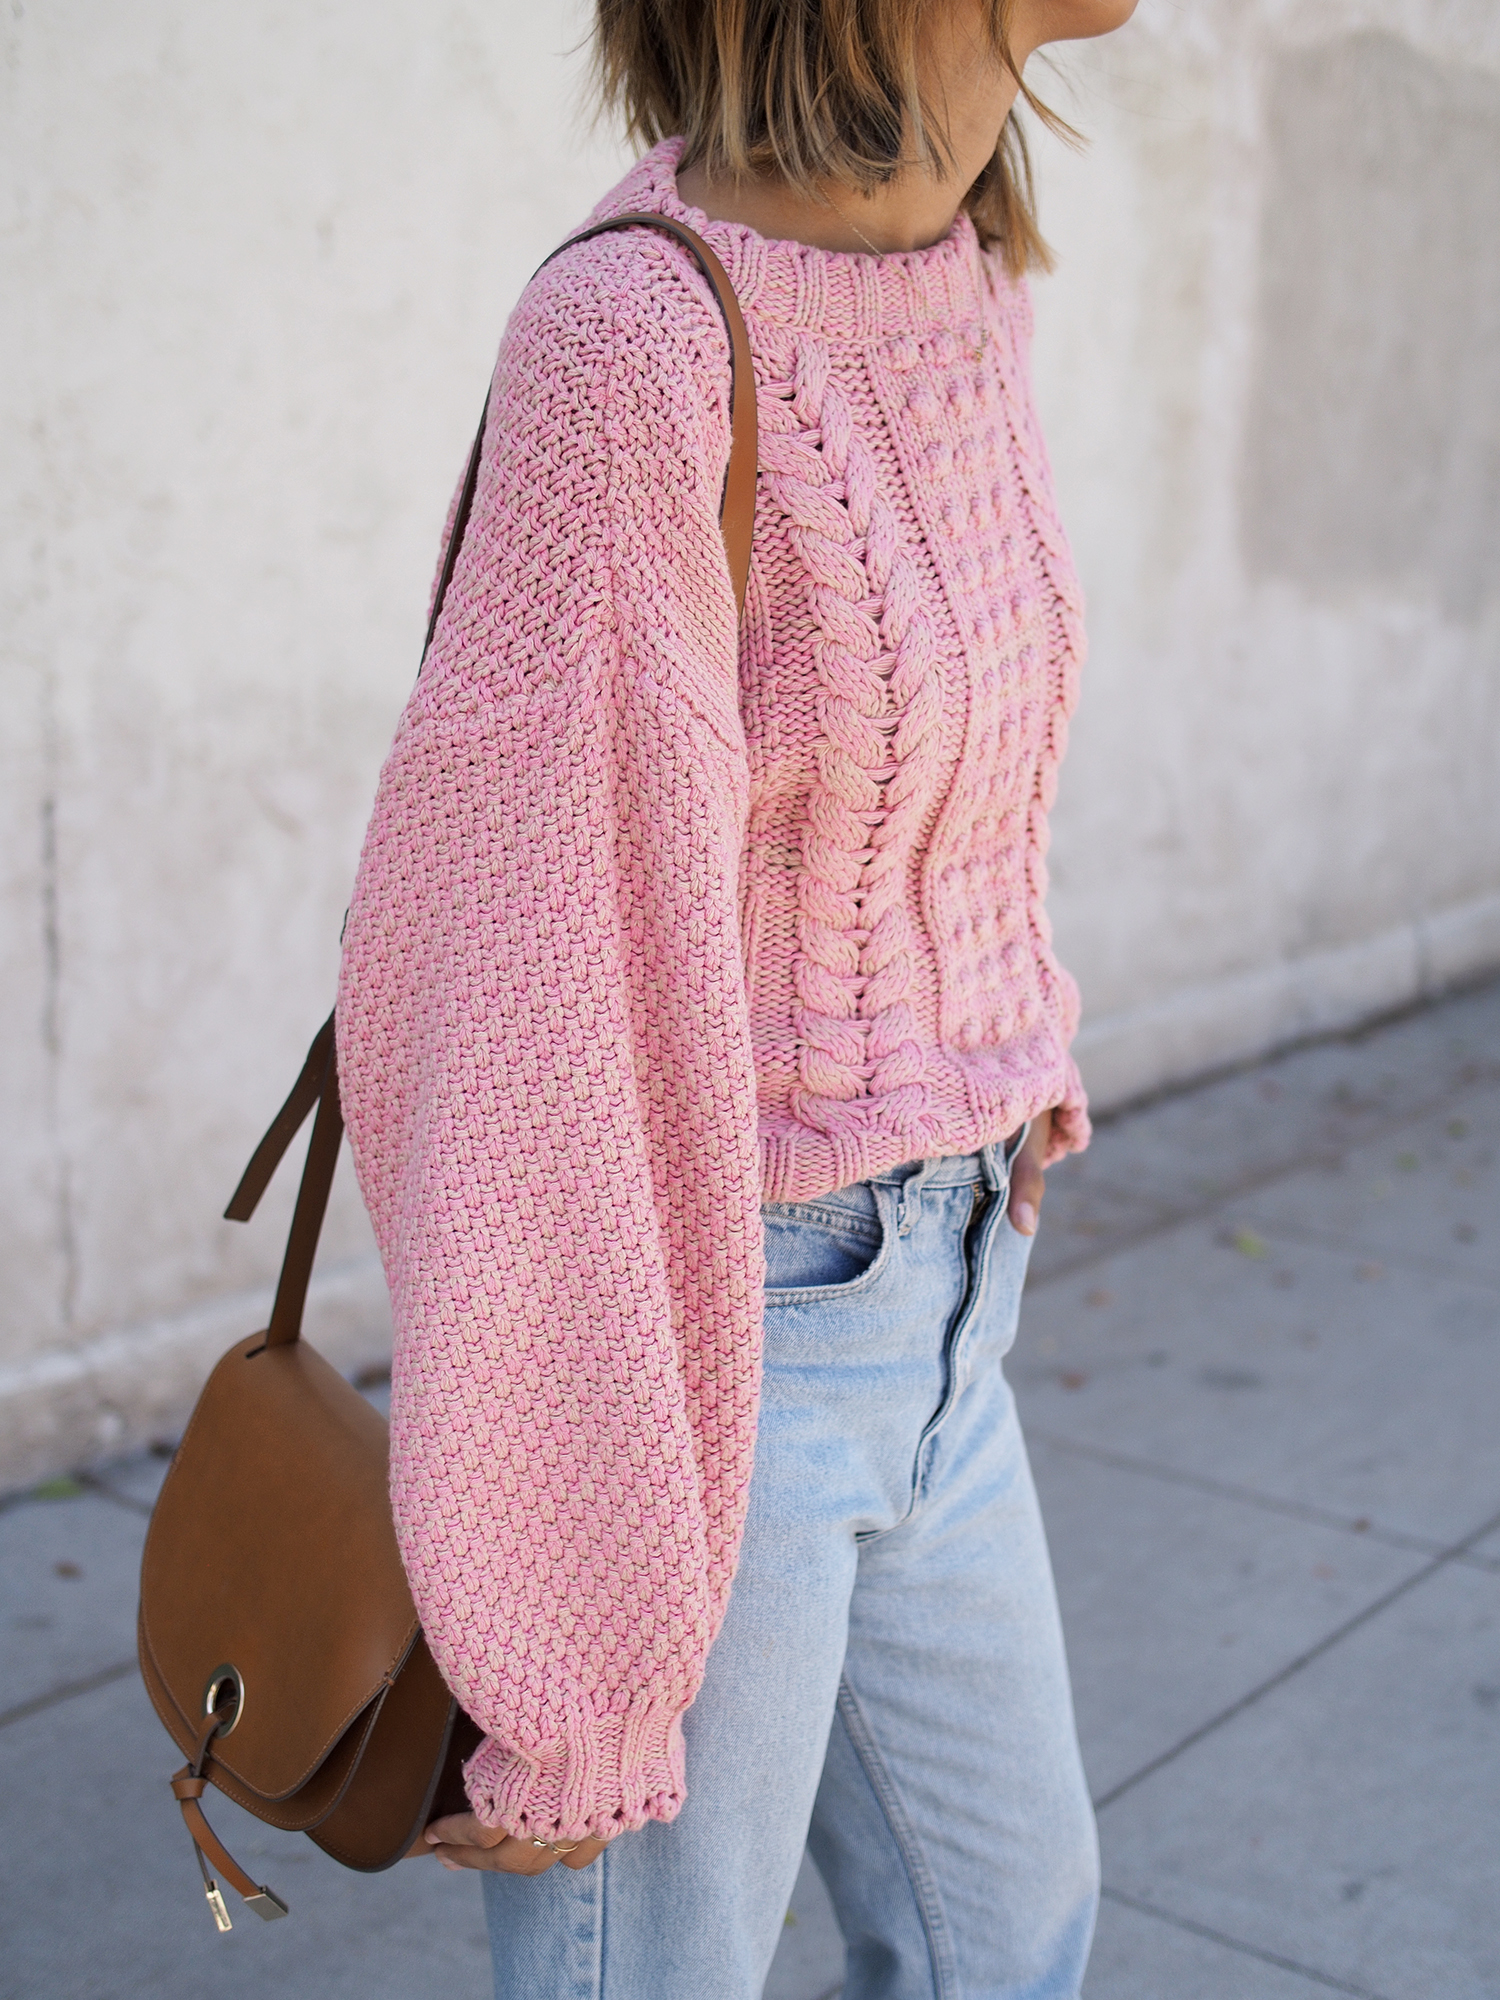 Chunky Pink Knit | Unconscious Style